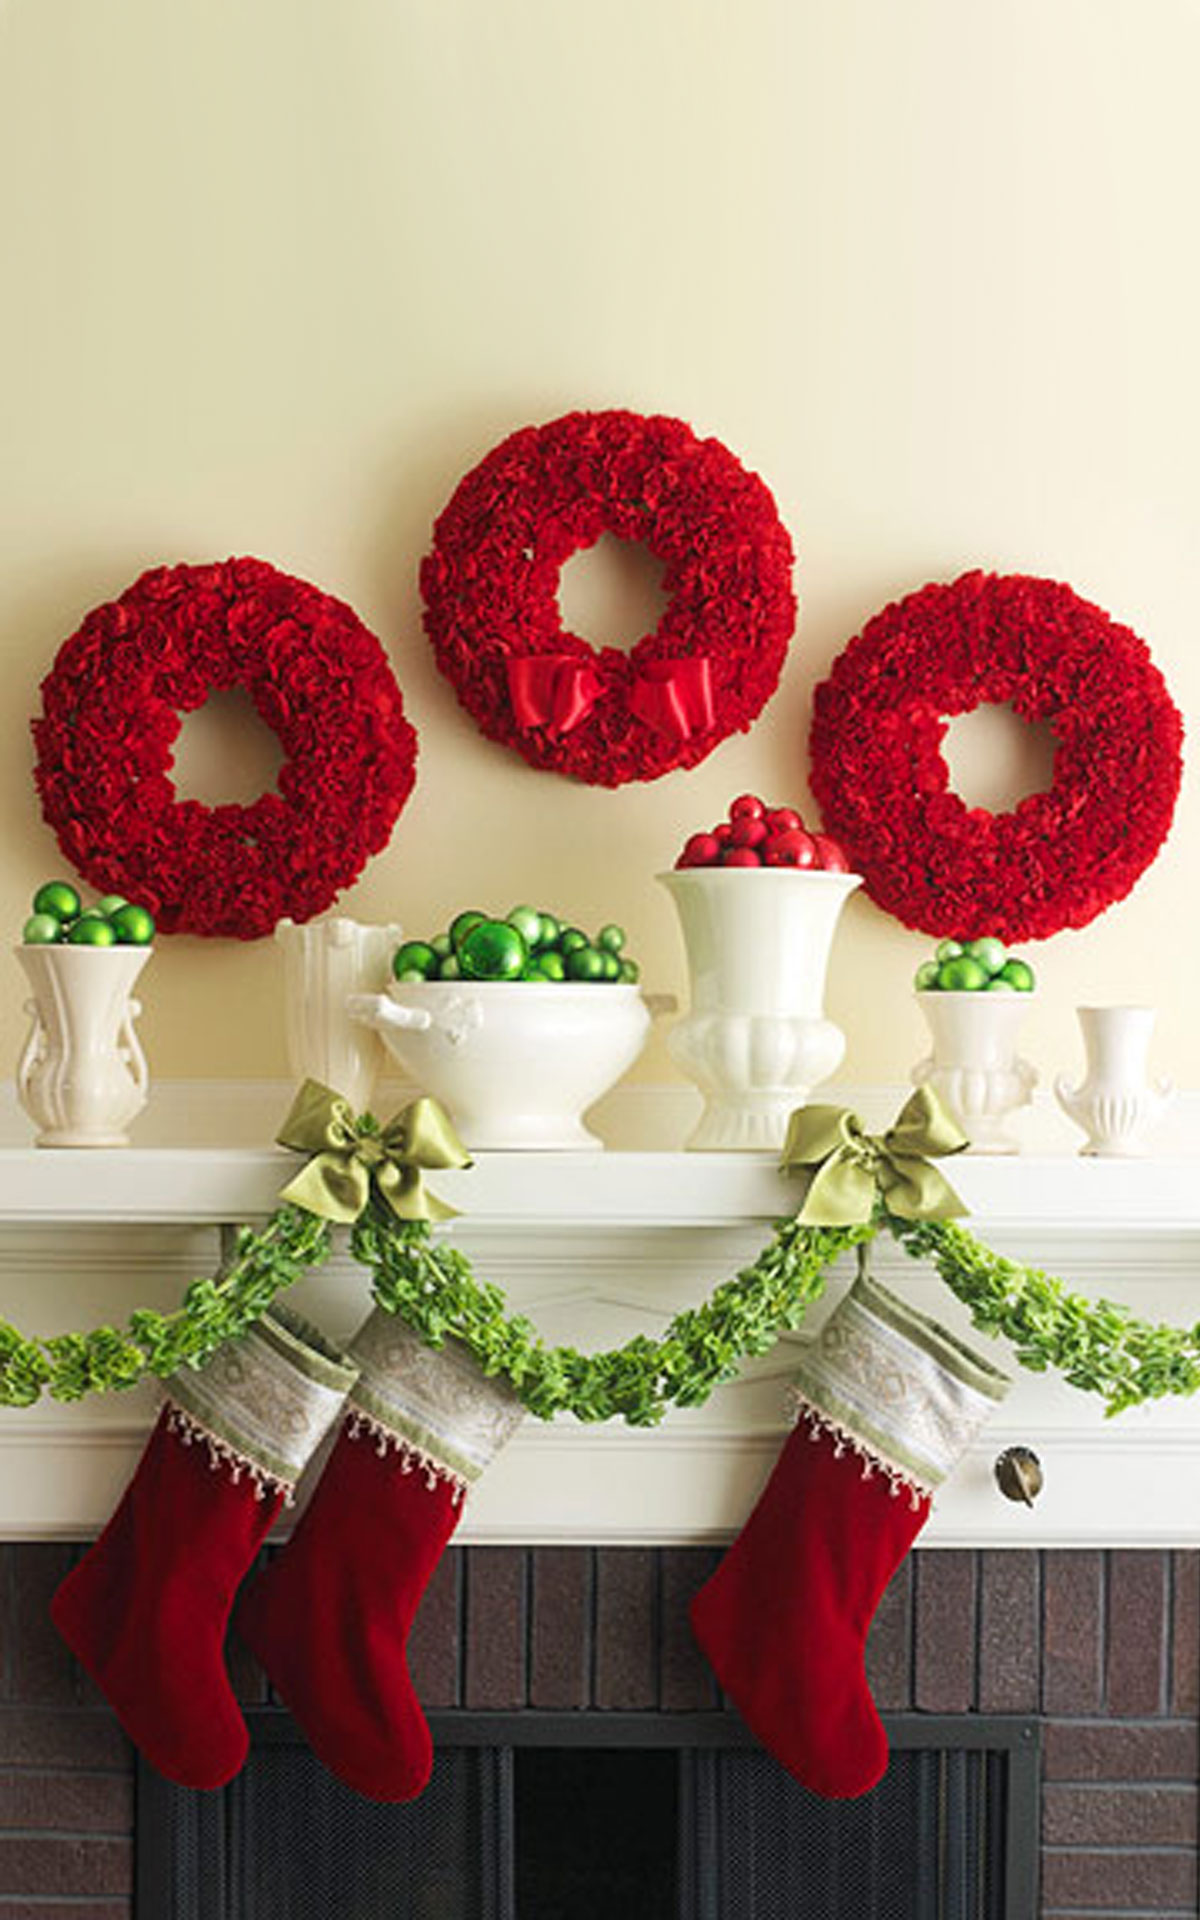 34 red wreaths atop the mantel christmas celebration all about 34 red wreaths atop the mantel solutioingenieria Choice Image